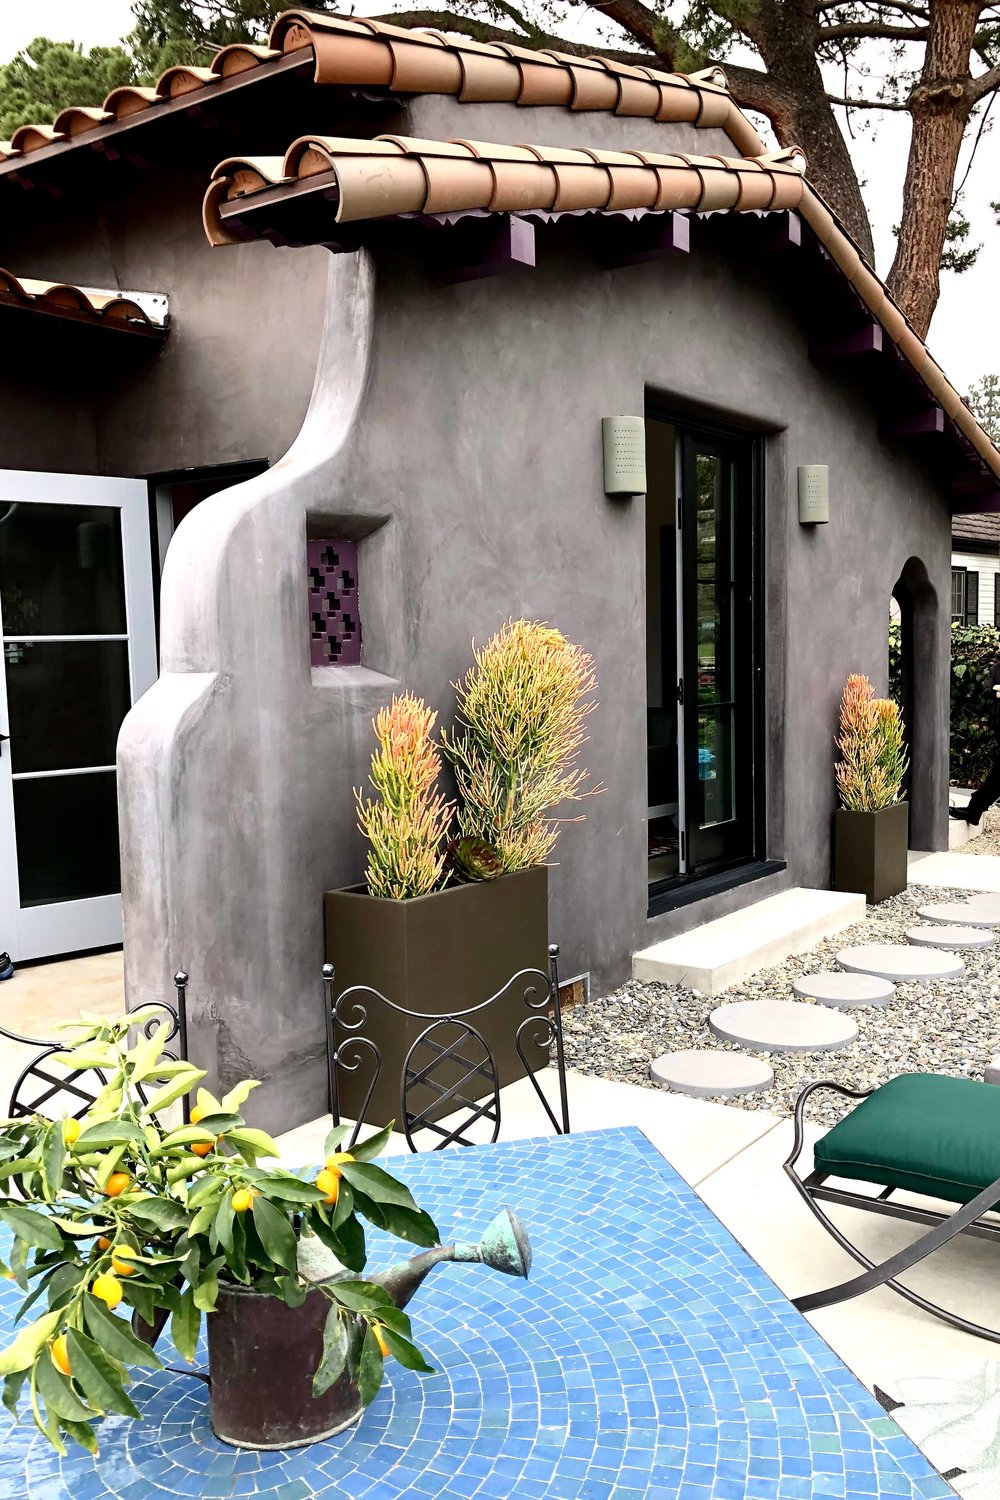 California Spanish style home gray exterior with clay tile roof and succulents #stuccoexterior #succulents #claytileroof #spanishstylehouse